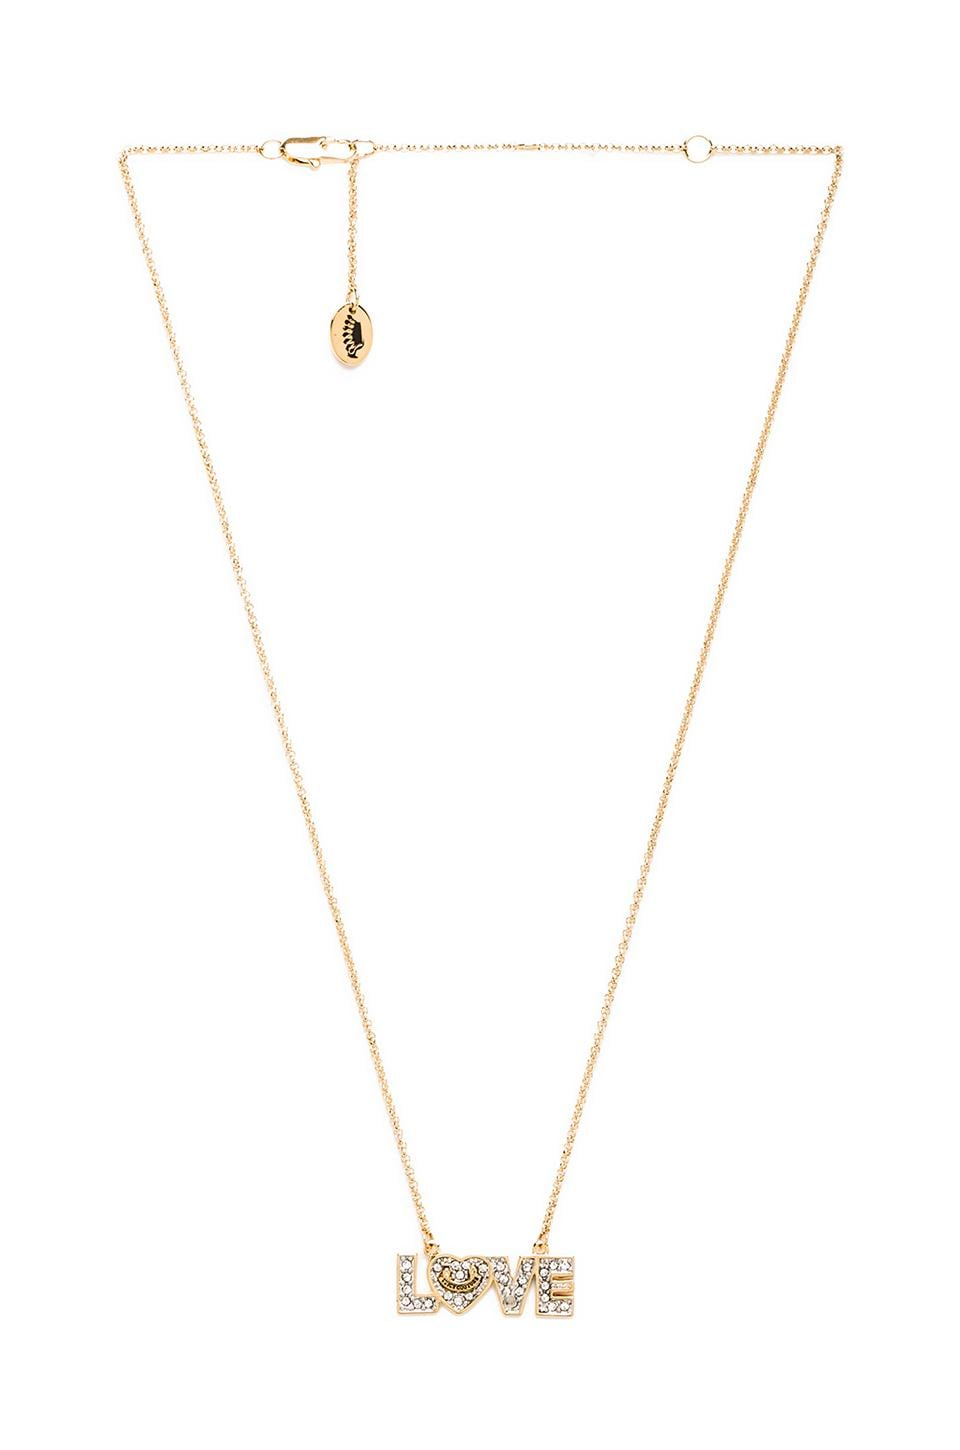 Juicy Couture Pave Love Wish Necklace in Gold